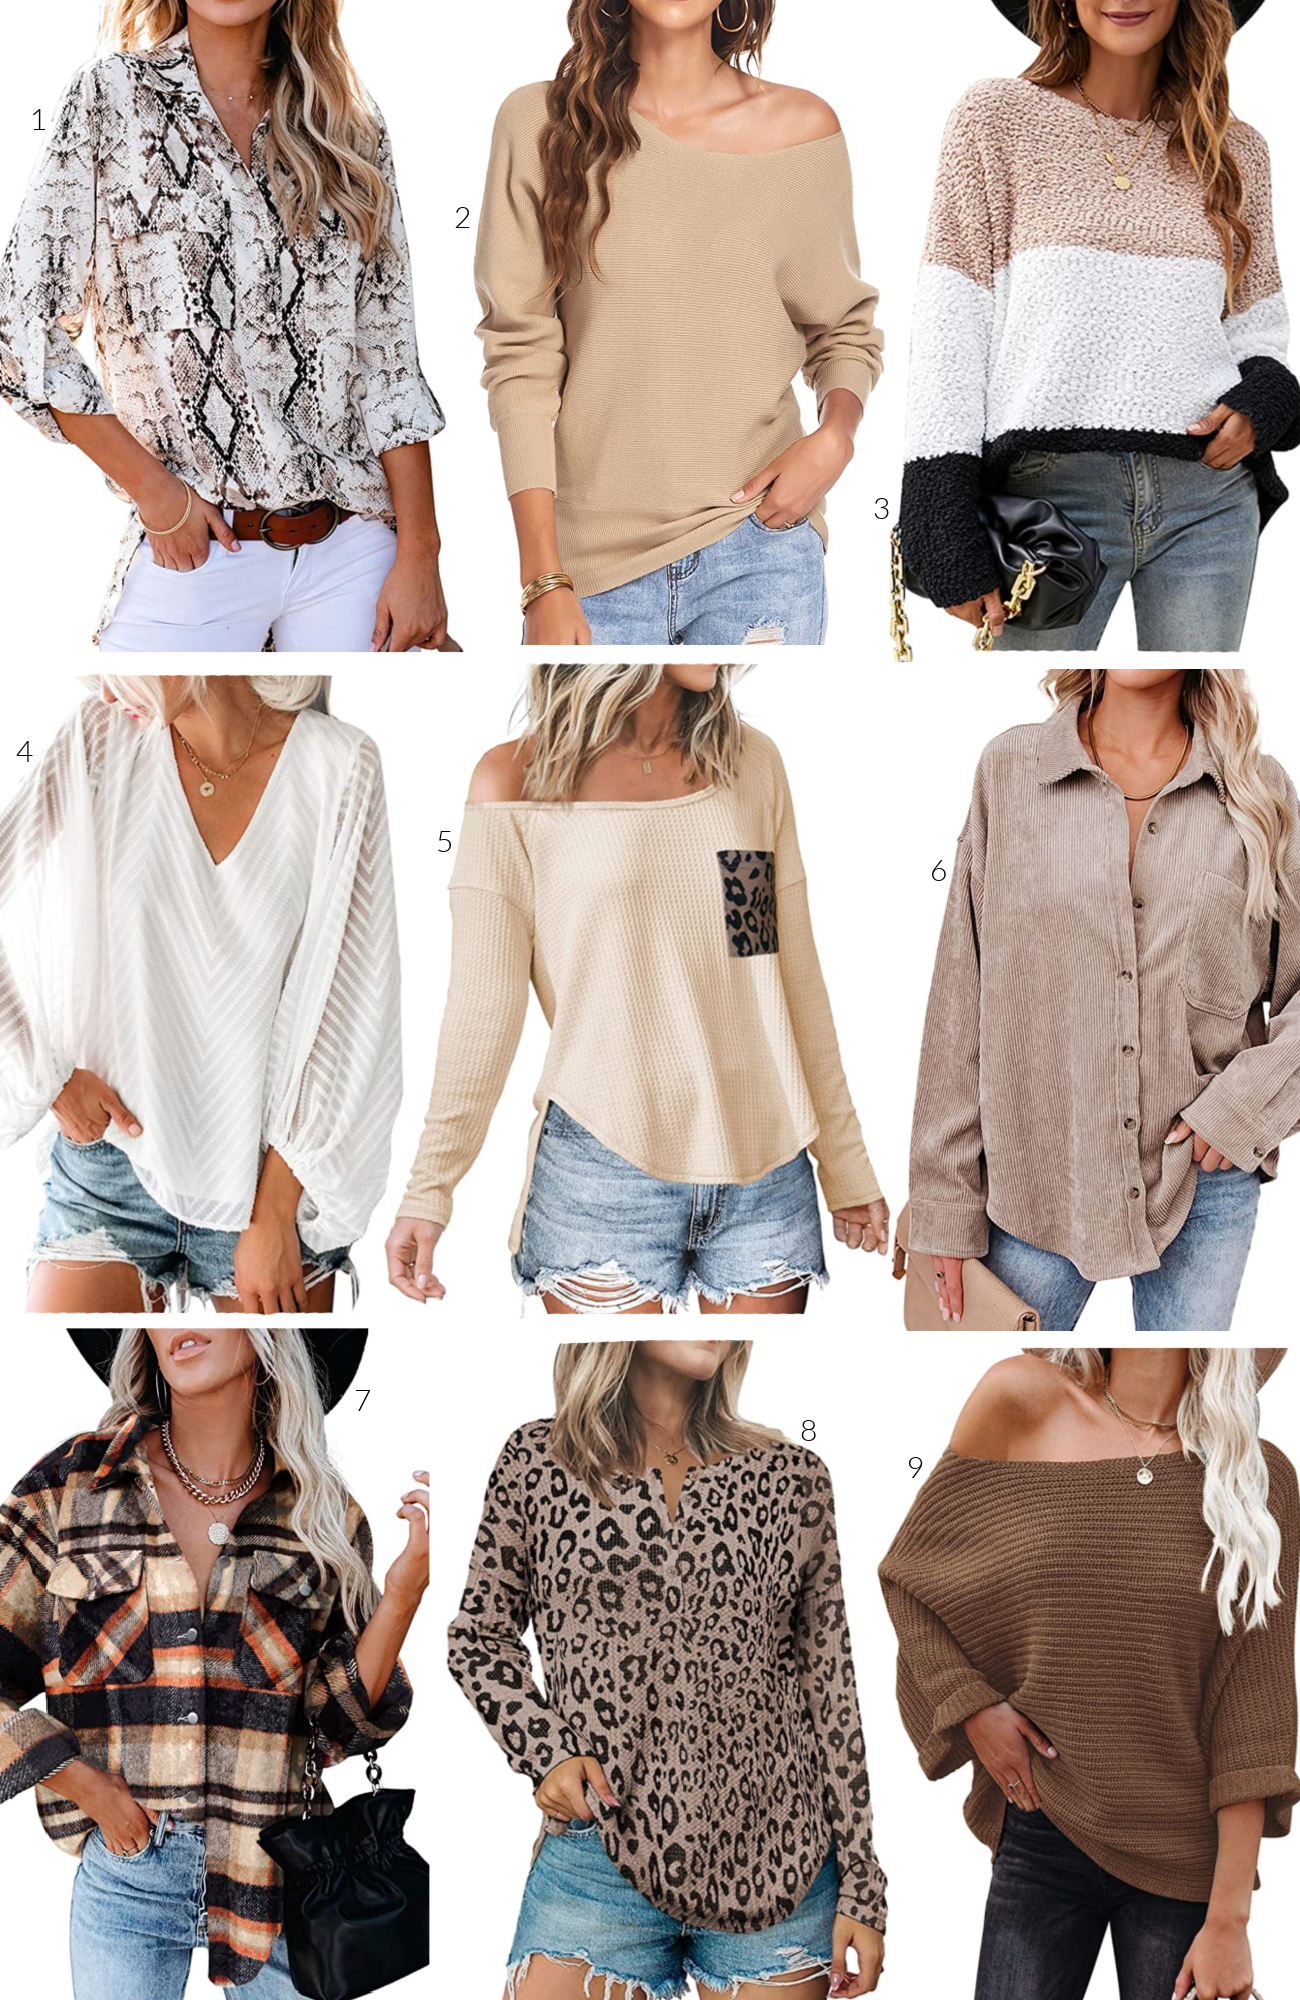 Amazon sweaters for less, Amazon fashion under $25, how to style leggings, what tops look good with leggings, how to conceal my tummy, tops to hide stomach fat